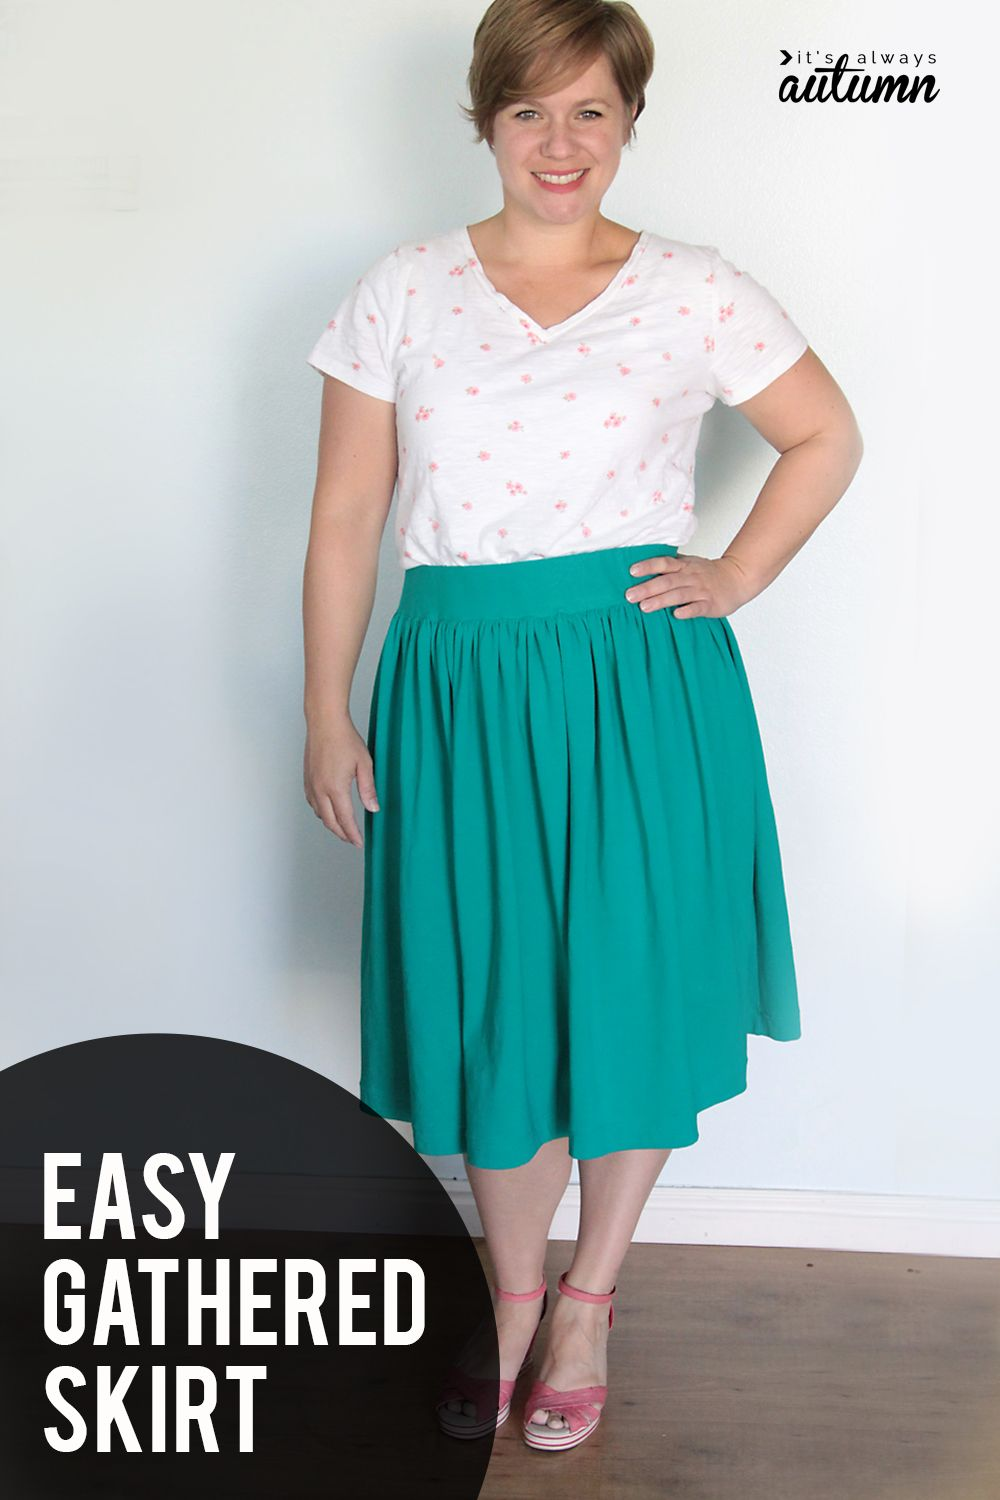 How to make a DIY gathered skirt! Easy gathered skirt tutorial with a flat elastic waistband. #itsalwaysautumn #skirt #gatheredskirt #diyskirt #skirtsewingpattern